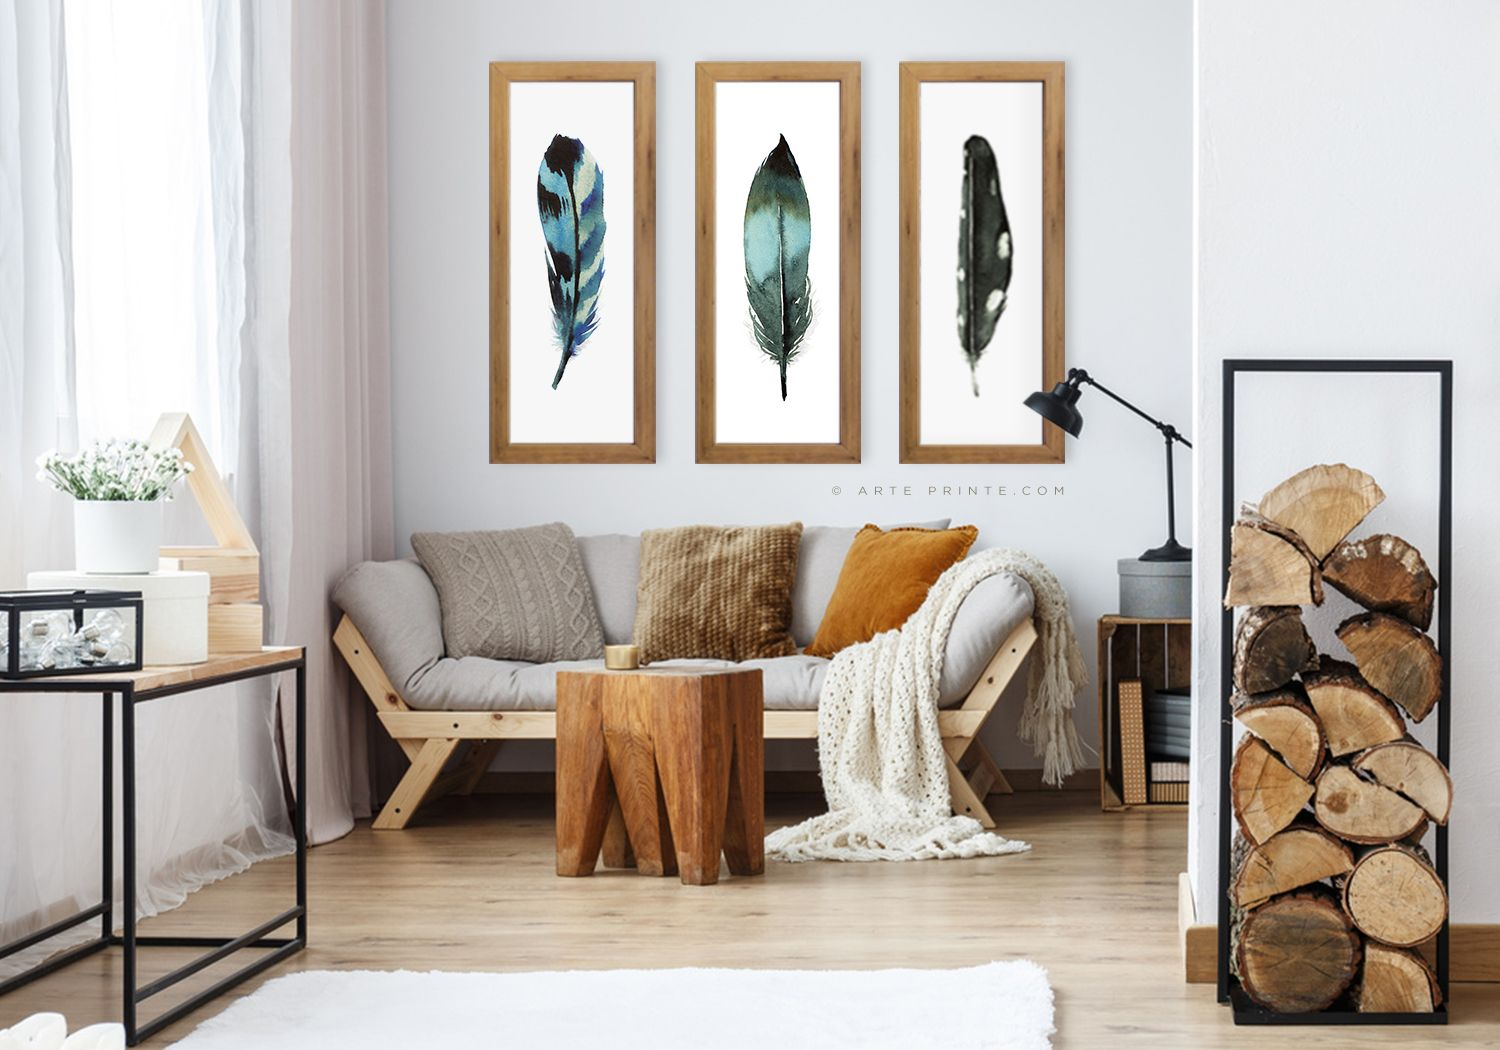 Feather Wall Art Set Of 3 Prints Extra Large Narrow Boho Etsy Feather Wall Art Wall Art Sets Wall Art Living Room #wall #art #sets #for #living #room